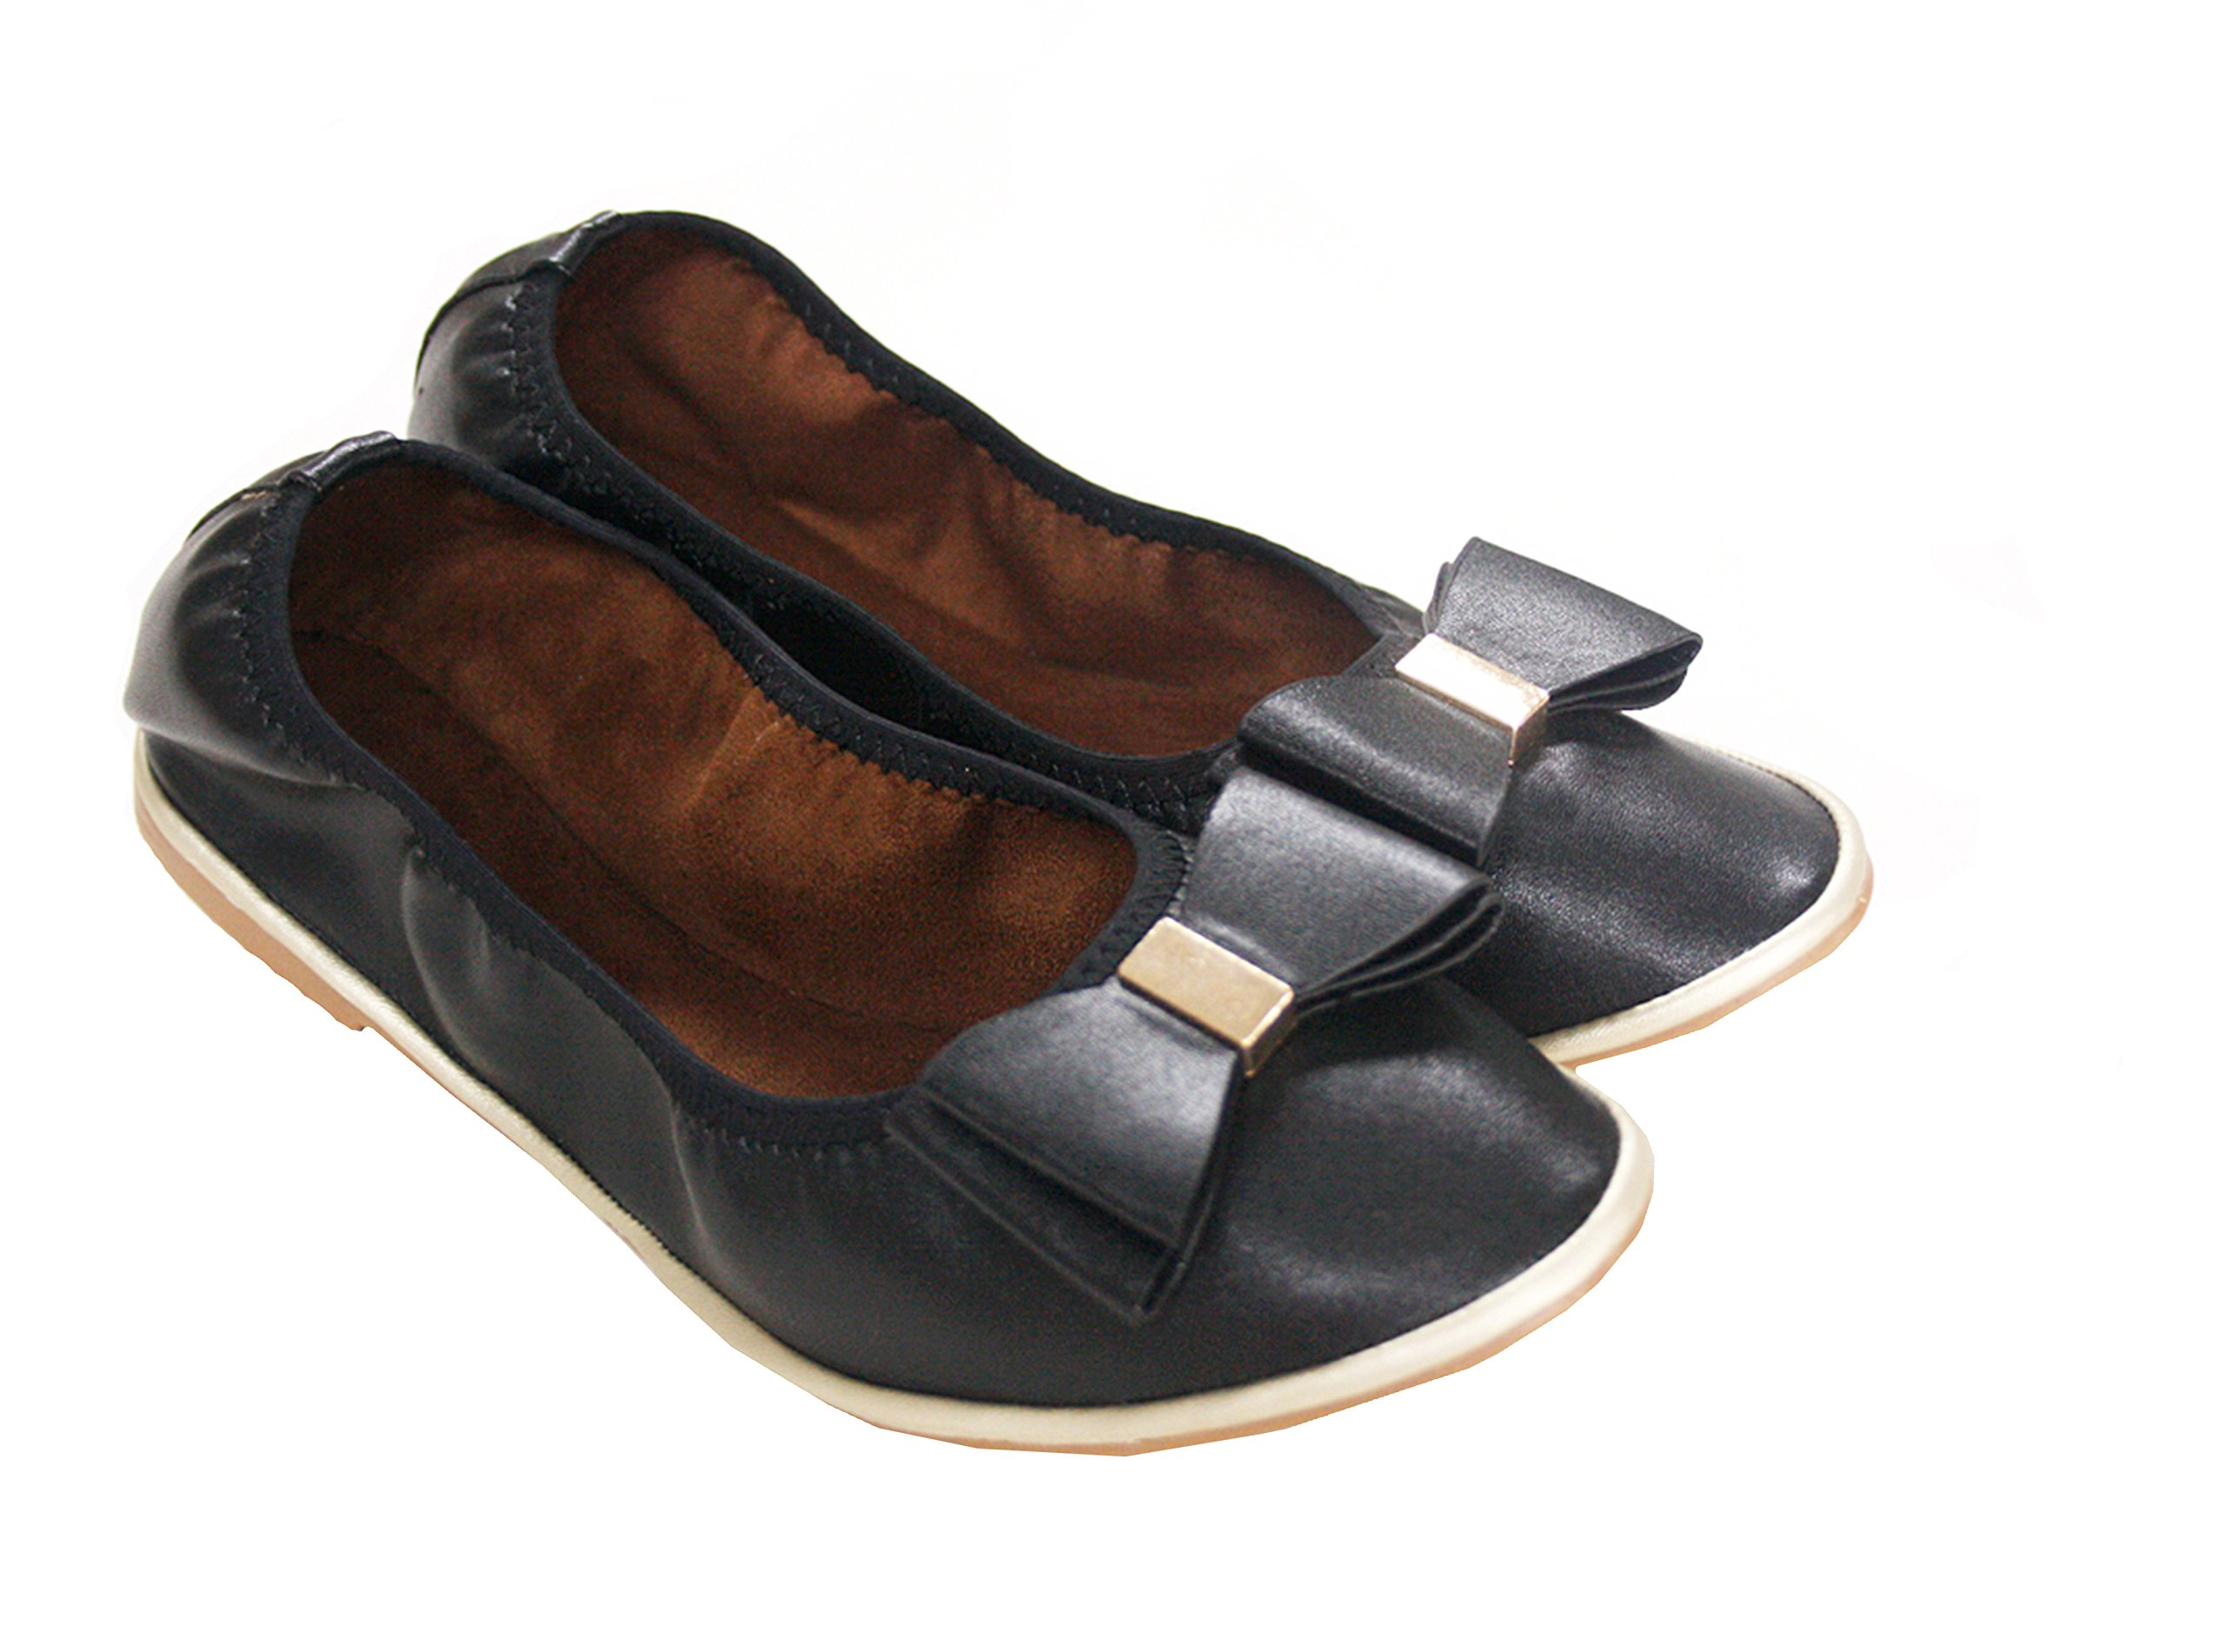 Solemates Midtowns Scrunch Foldable Ballet Flats with Carrying Pouch (6, Black)